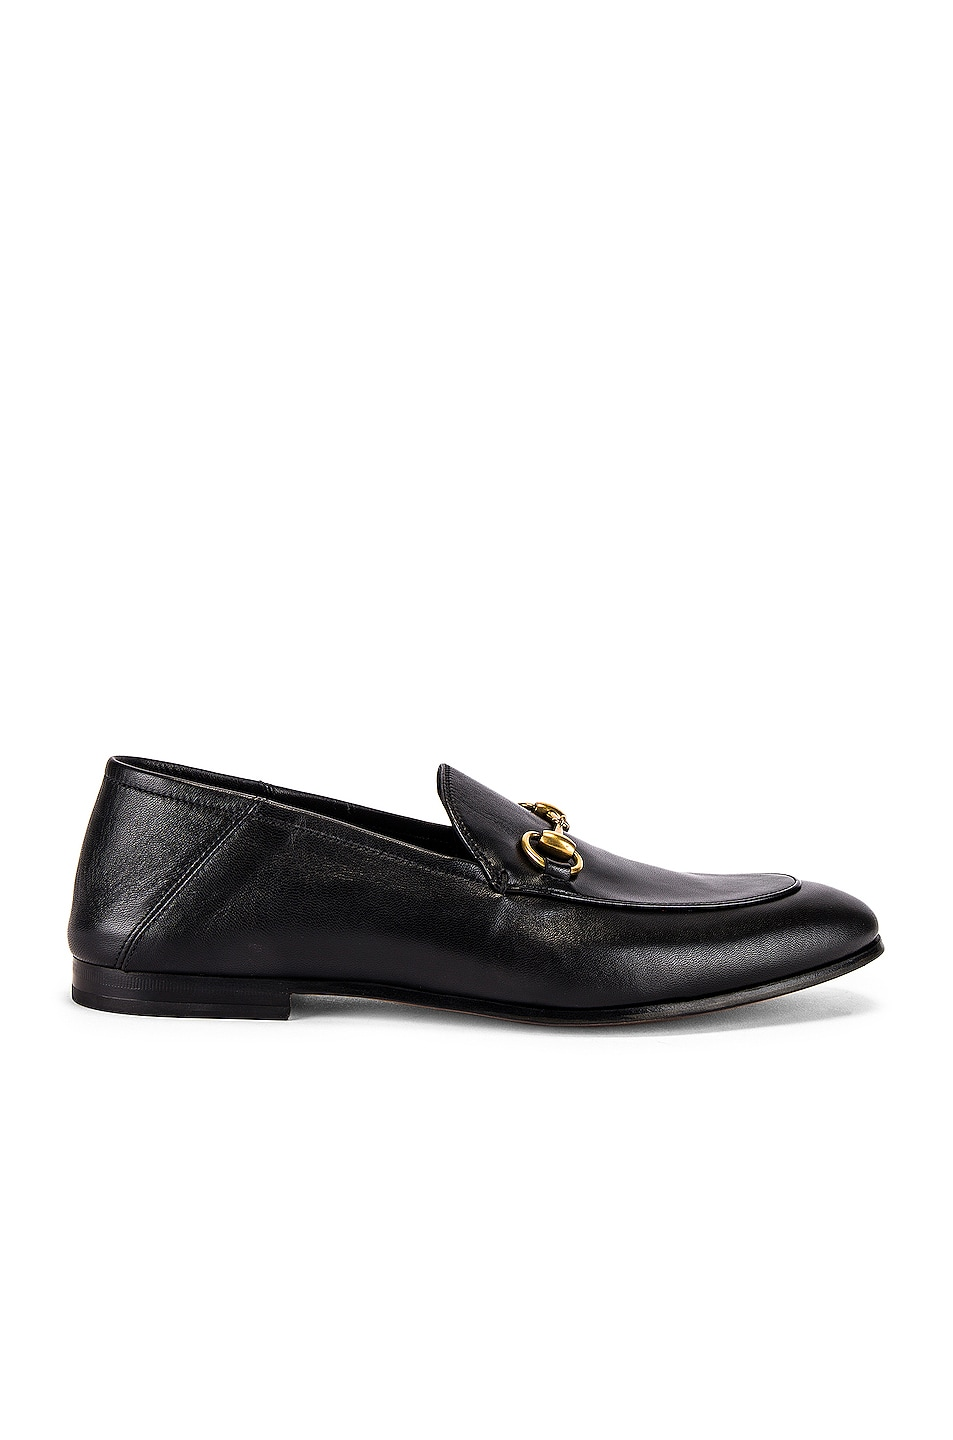 Image 2 of Gucci Ultrapace Loafer in Nero